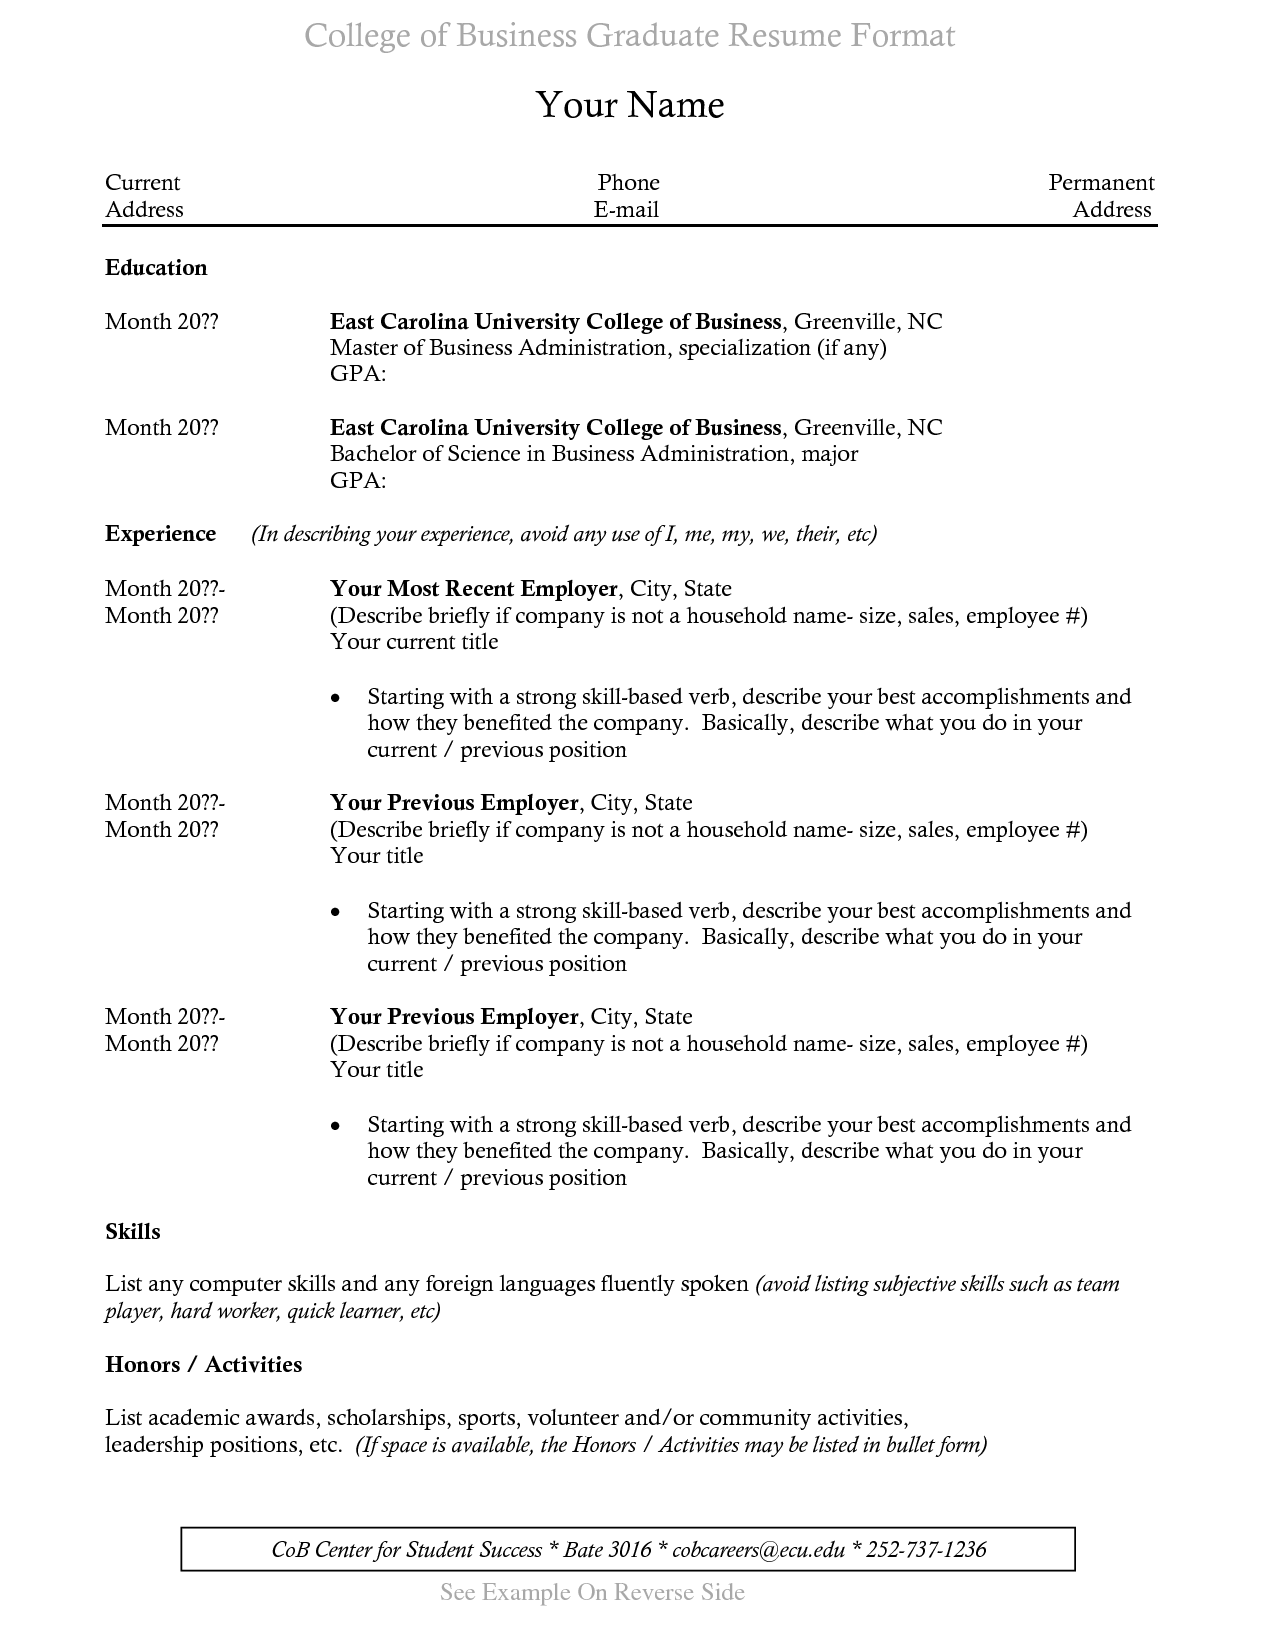 Sample Resume For Recent College Graduate Recent College Graduate  Resume Templates  Pinterest  College And .